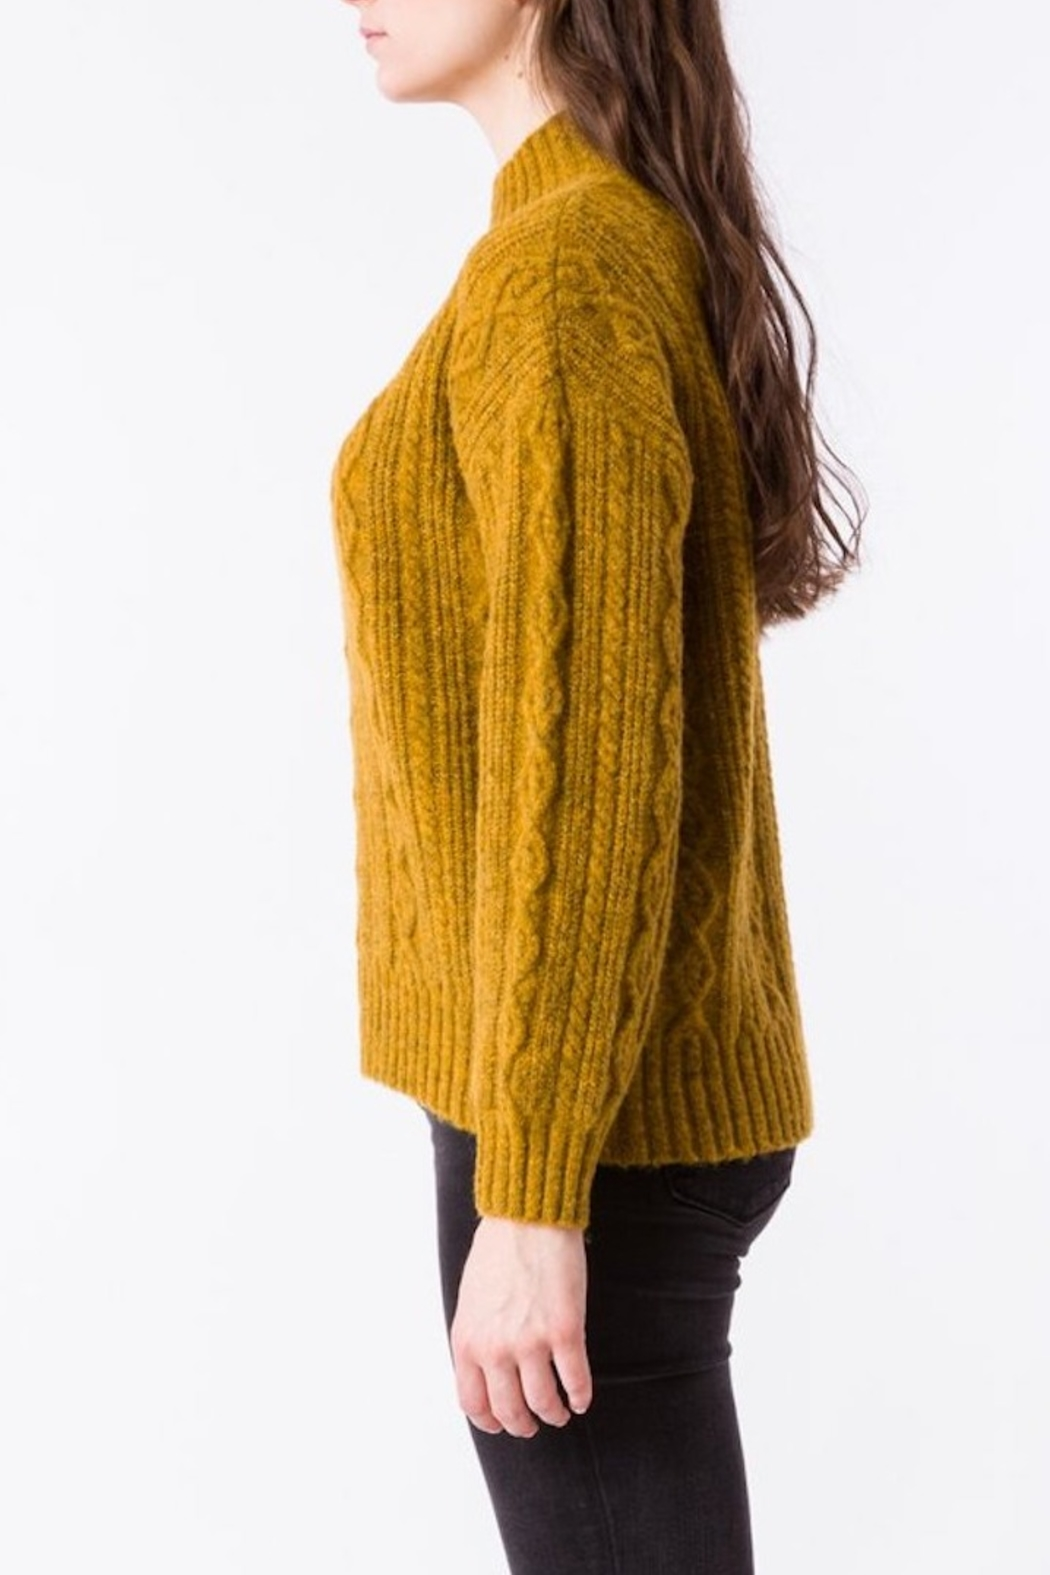 Kerisma Spice Cable-Knit Sweater - Back Cropped Image